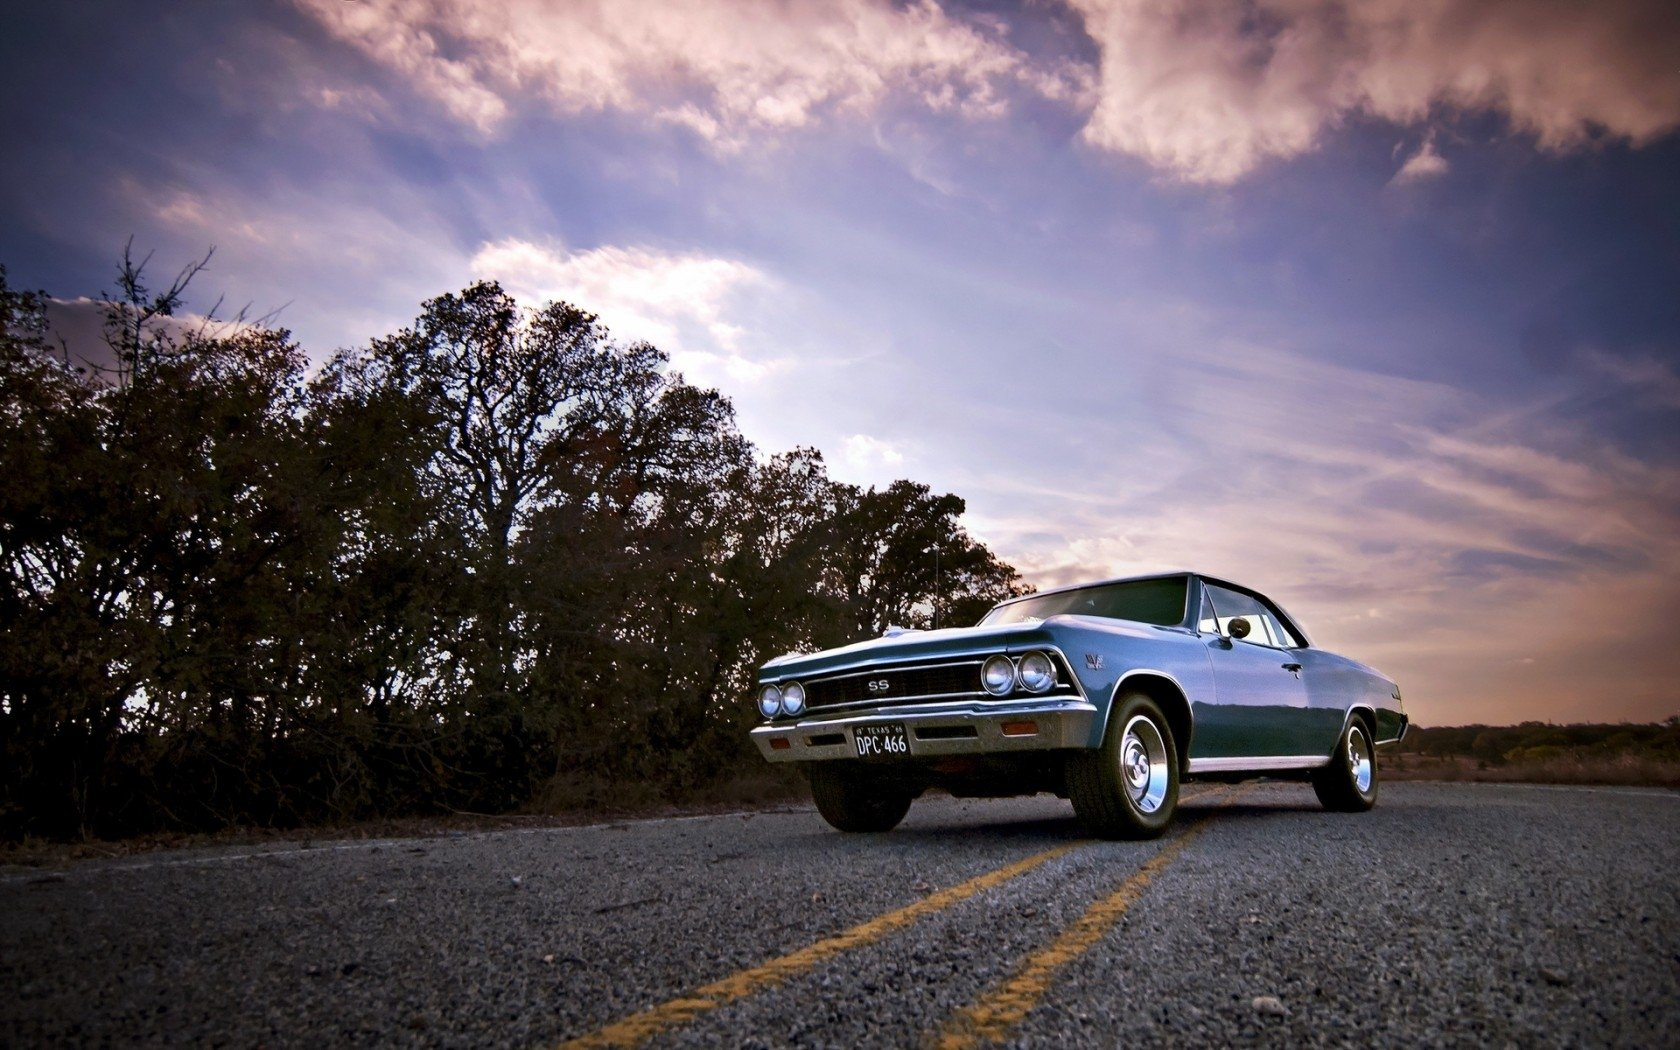 Chevelle Ss Wallpaper 1966 Chevrolet Chevelle Ss Wallpaper And Background Image